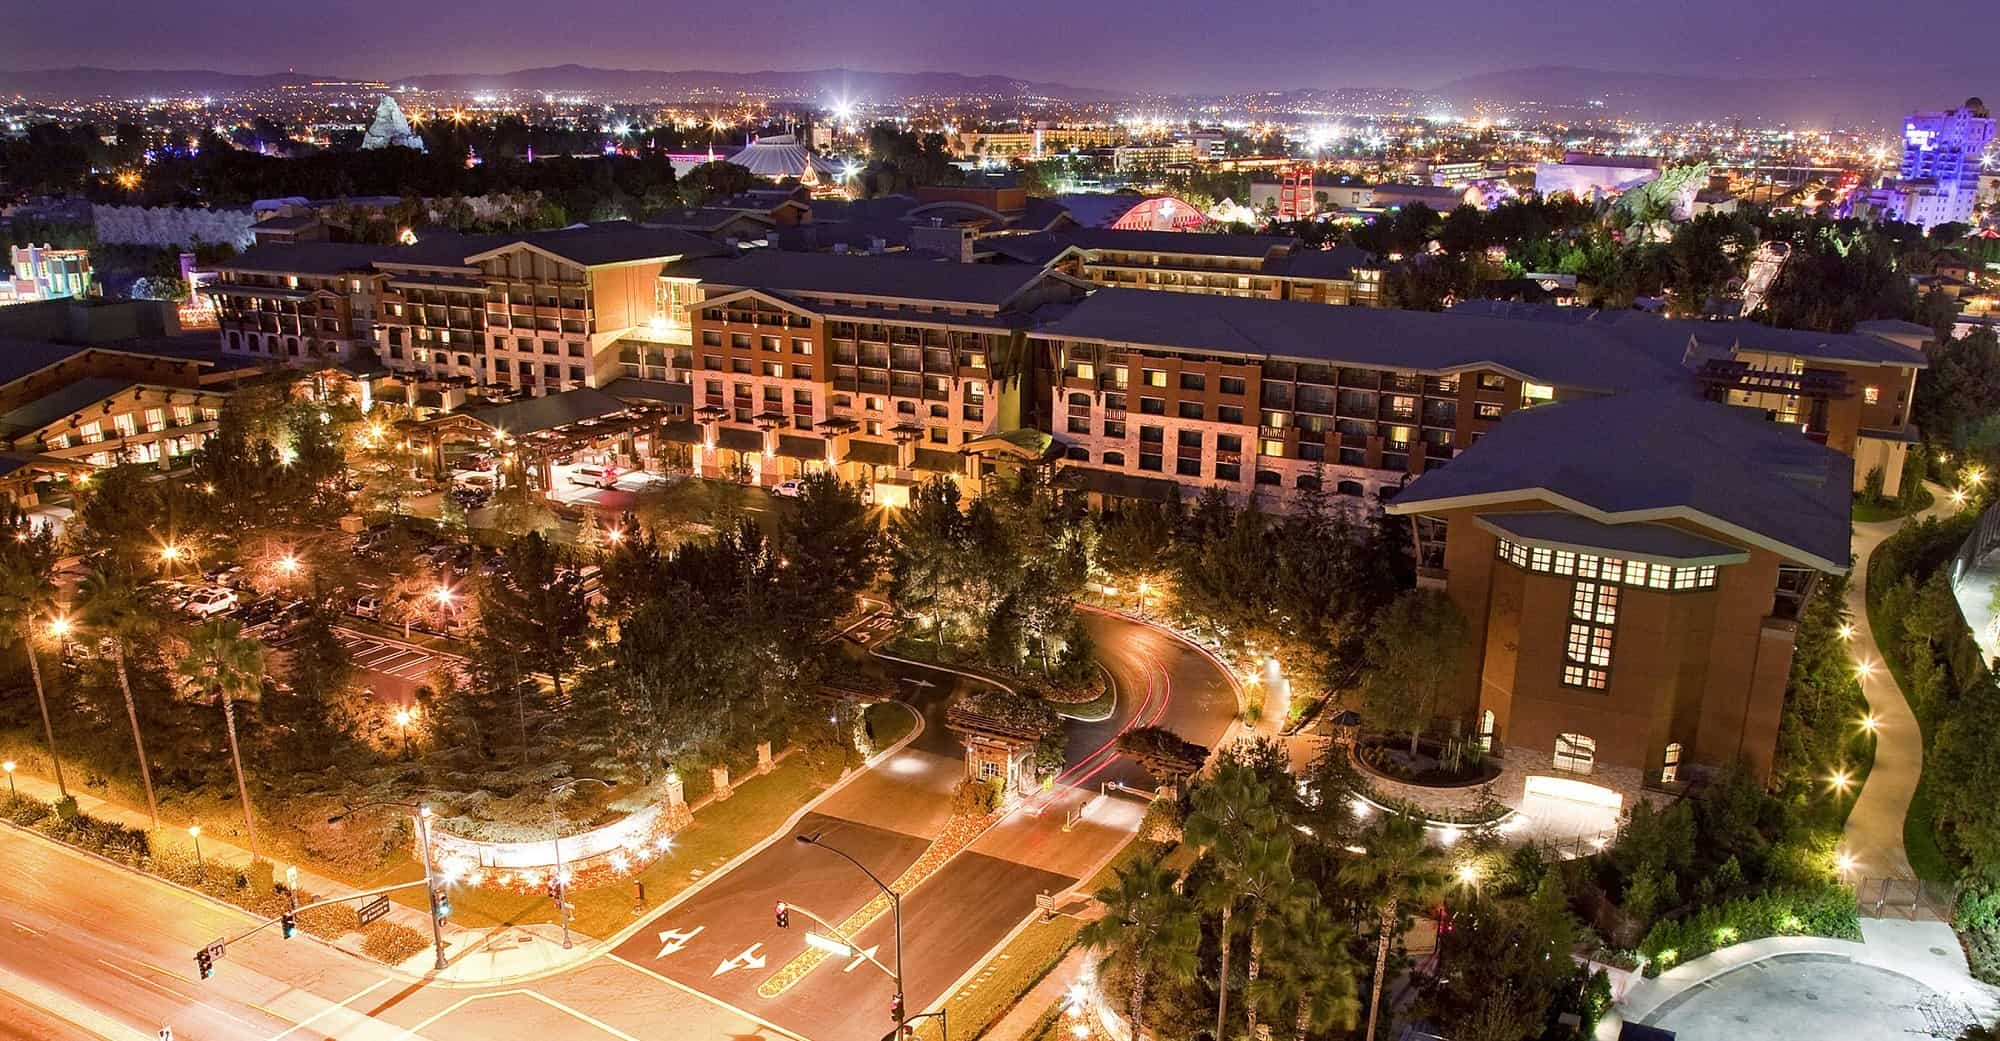 The 12 Best Hotels Near Disneyland for Families